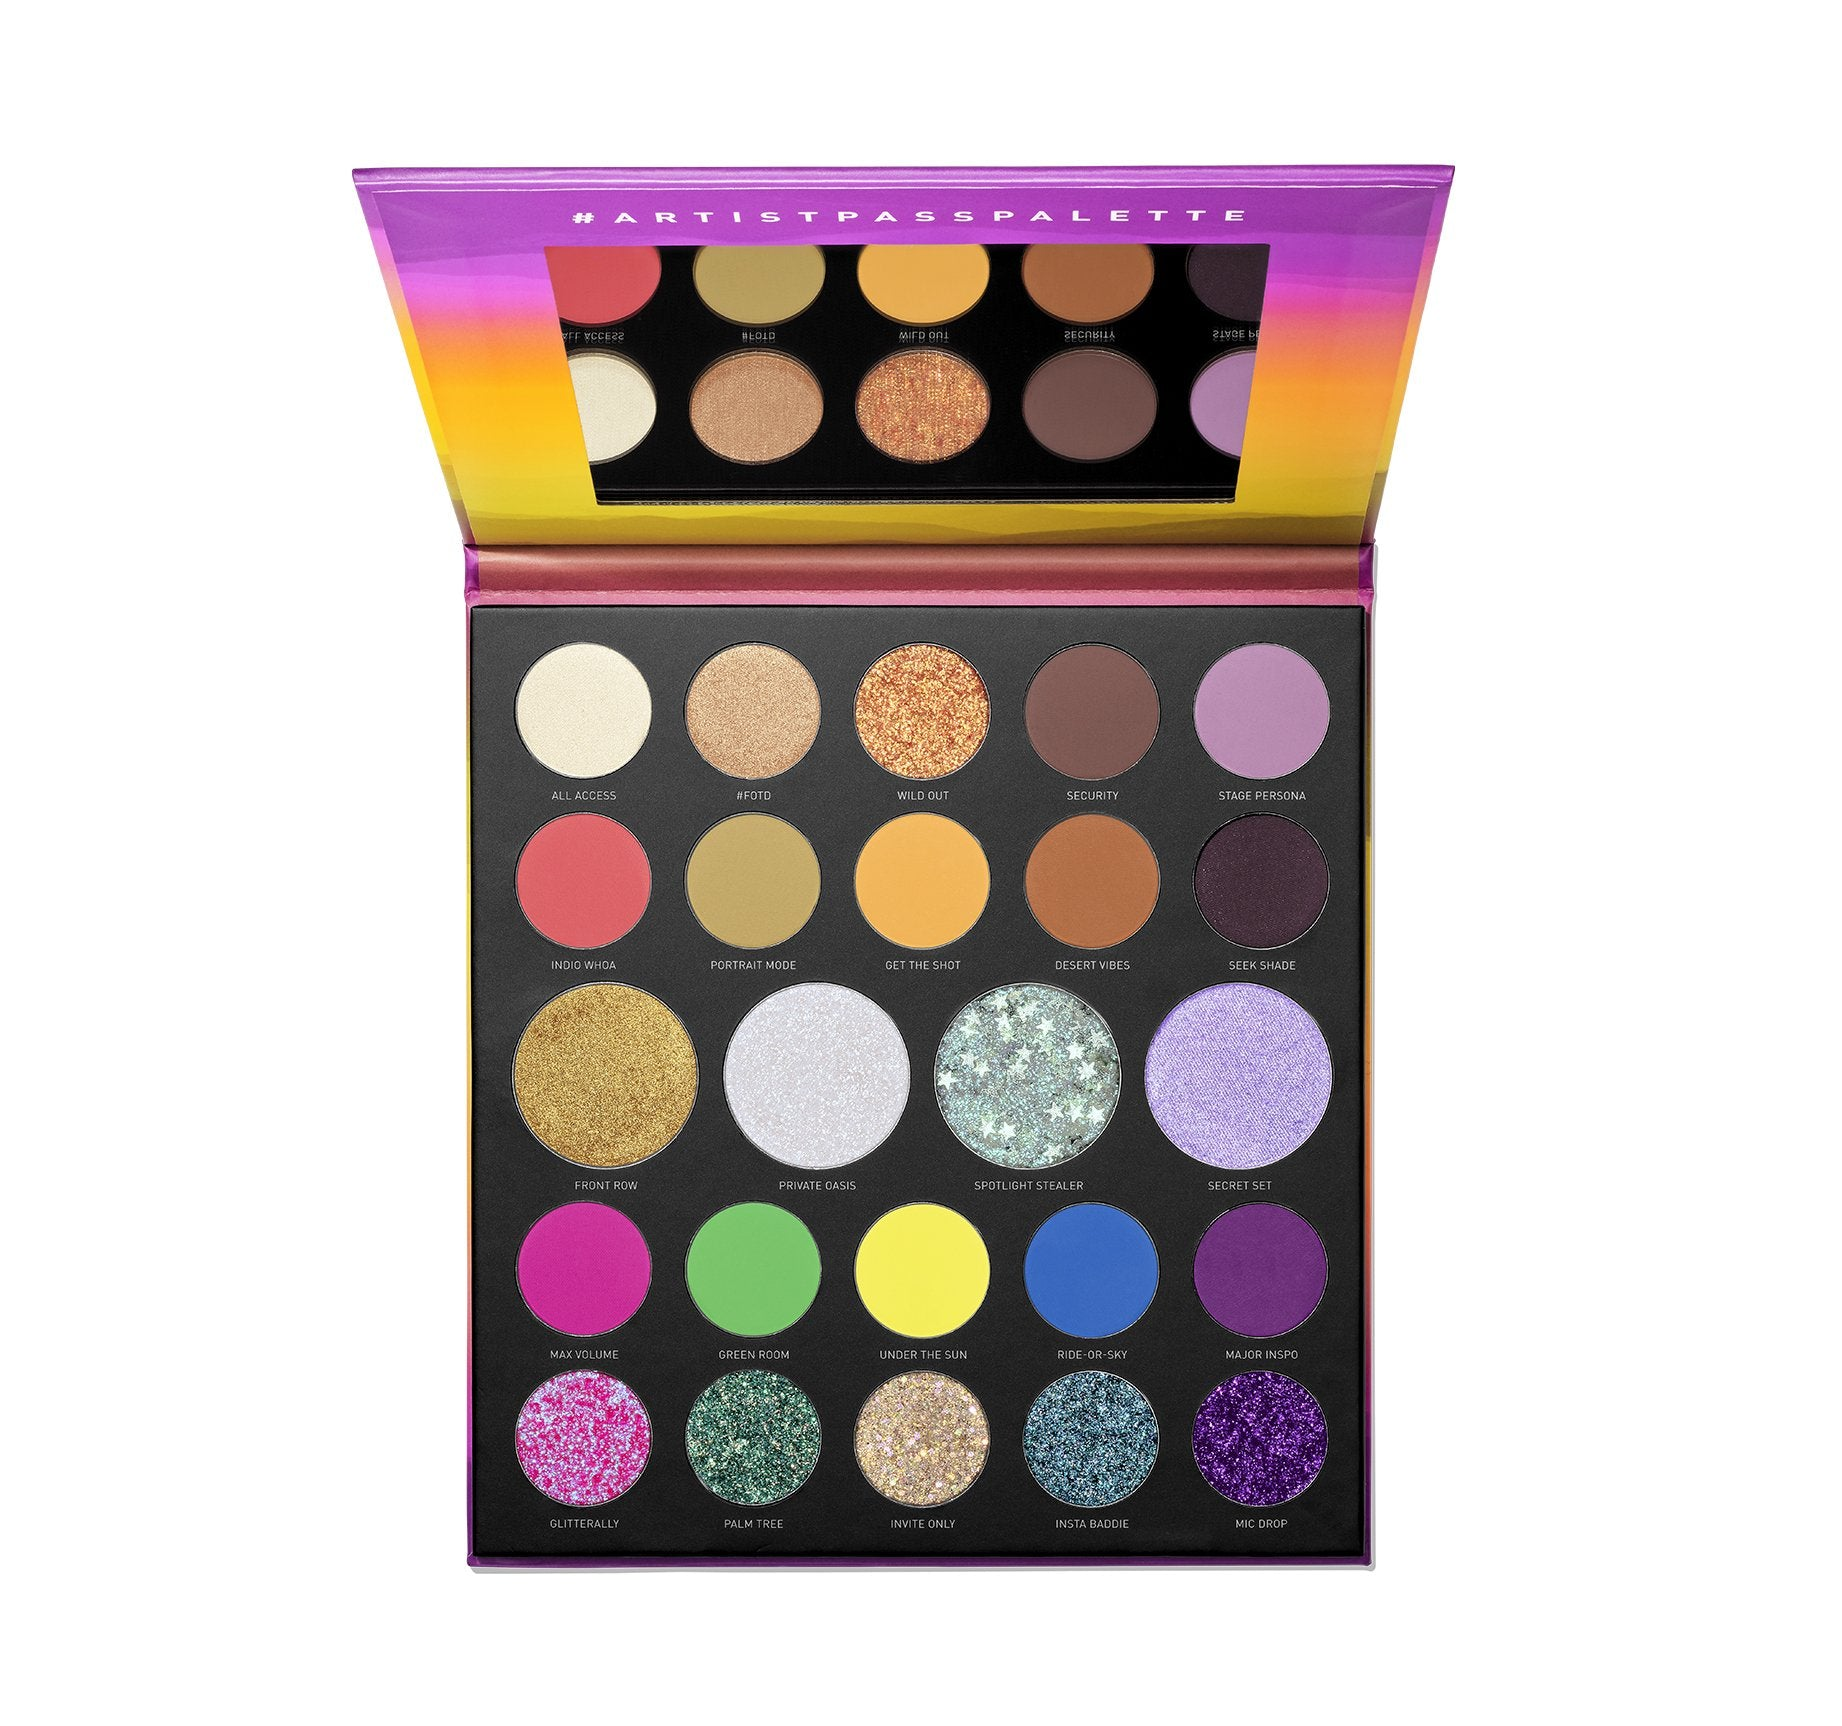 24A ARTIST PASS ARTISTRY PALETTE, view larger image